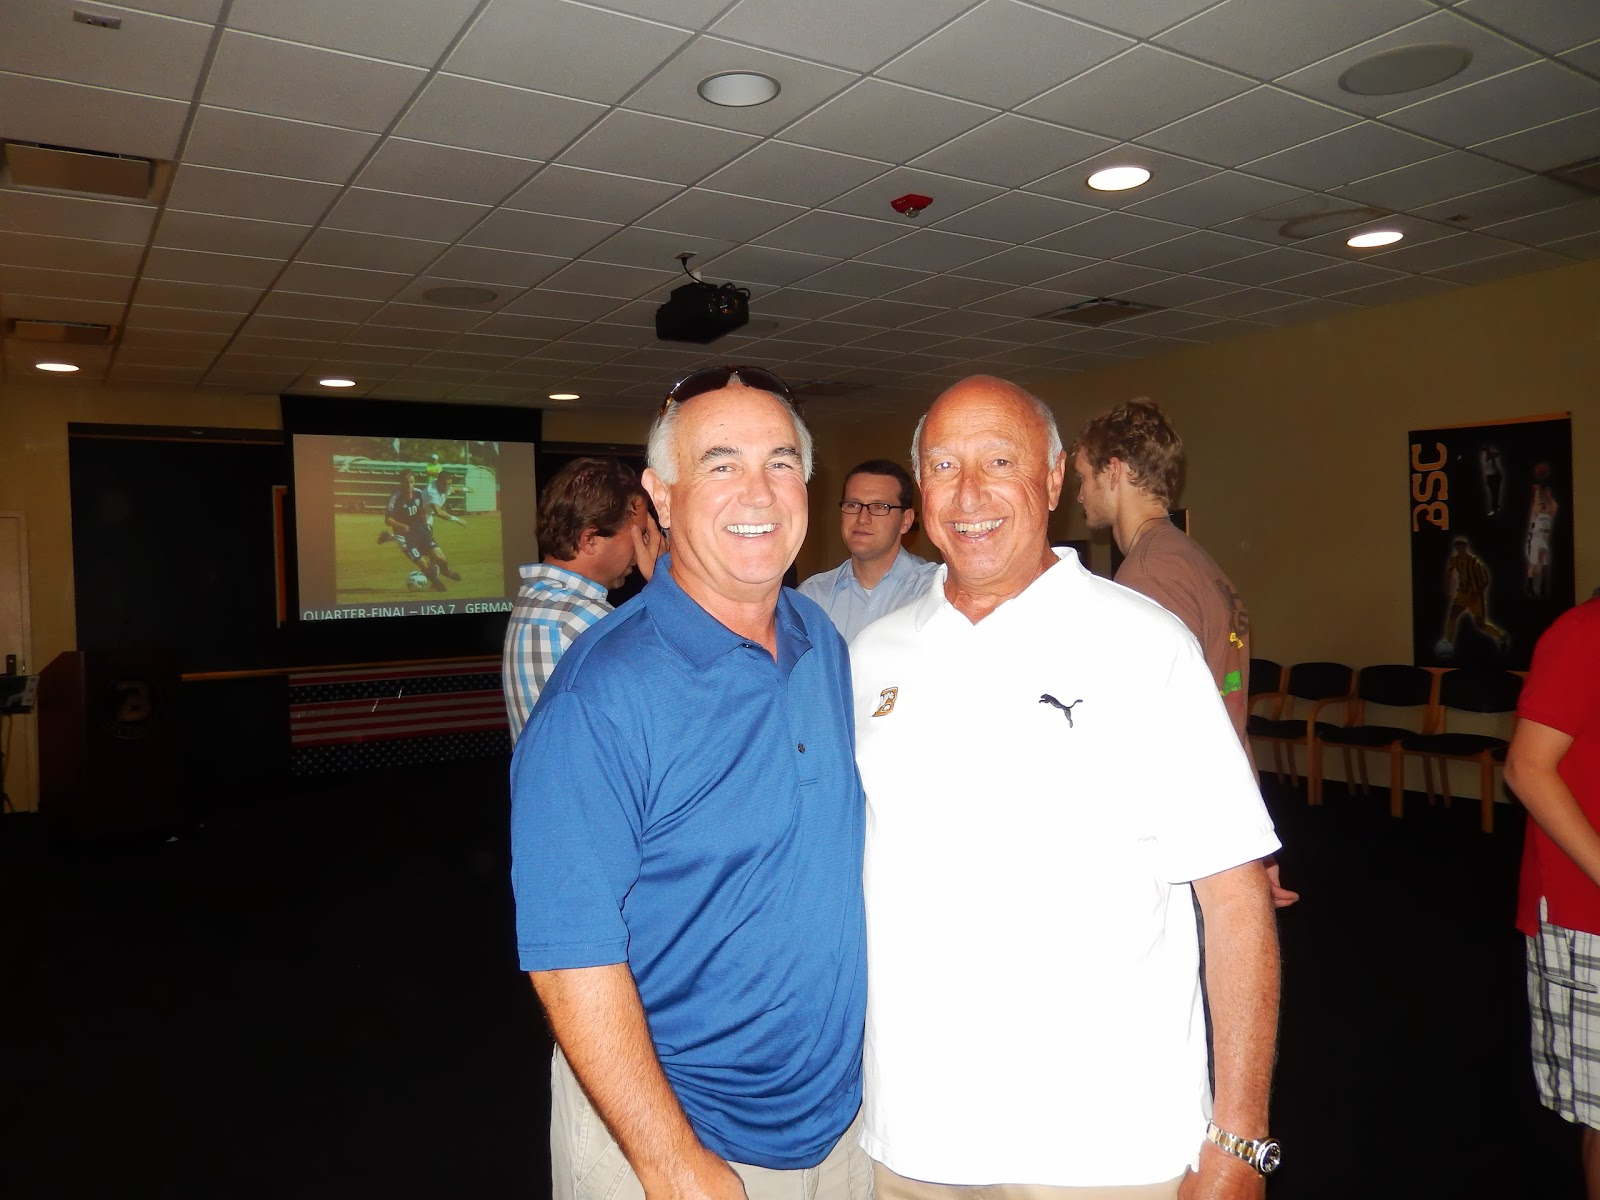 coach goldfarb  it was an extremely nice affair complete lunch and slide show of our victories playing in the background it was truly a highlight for me